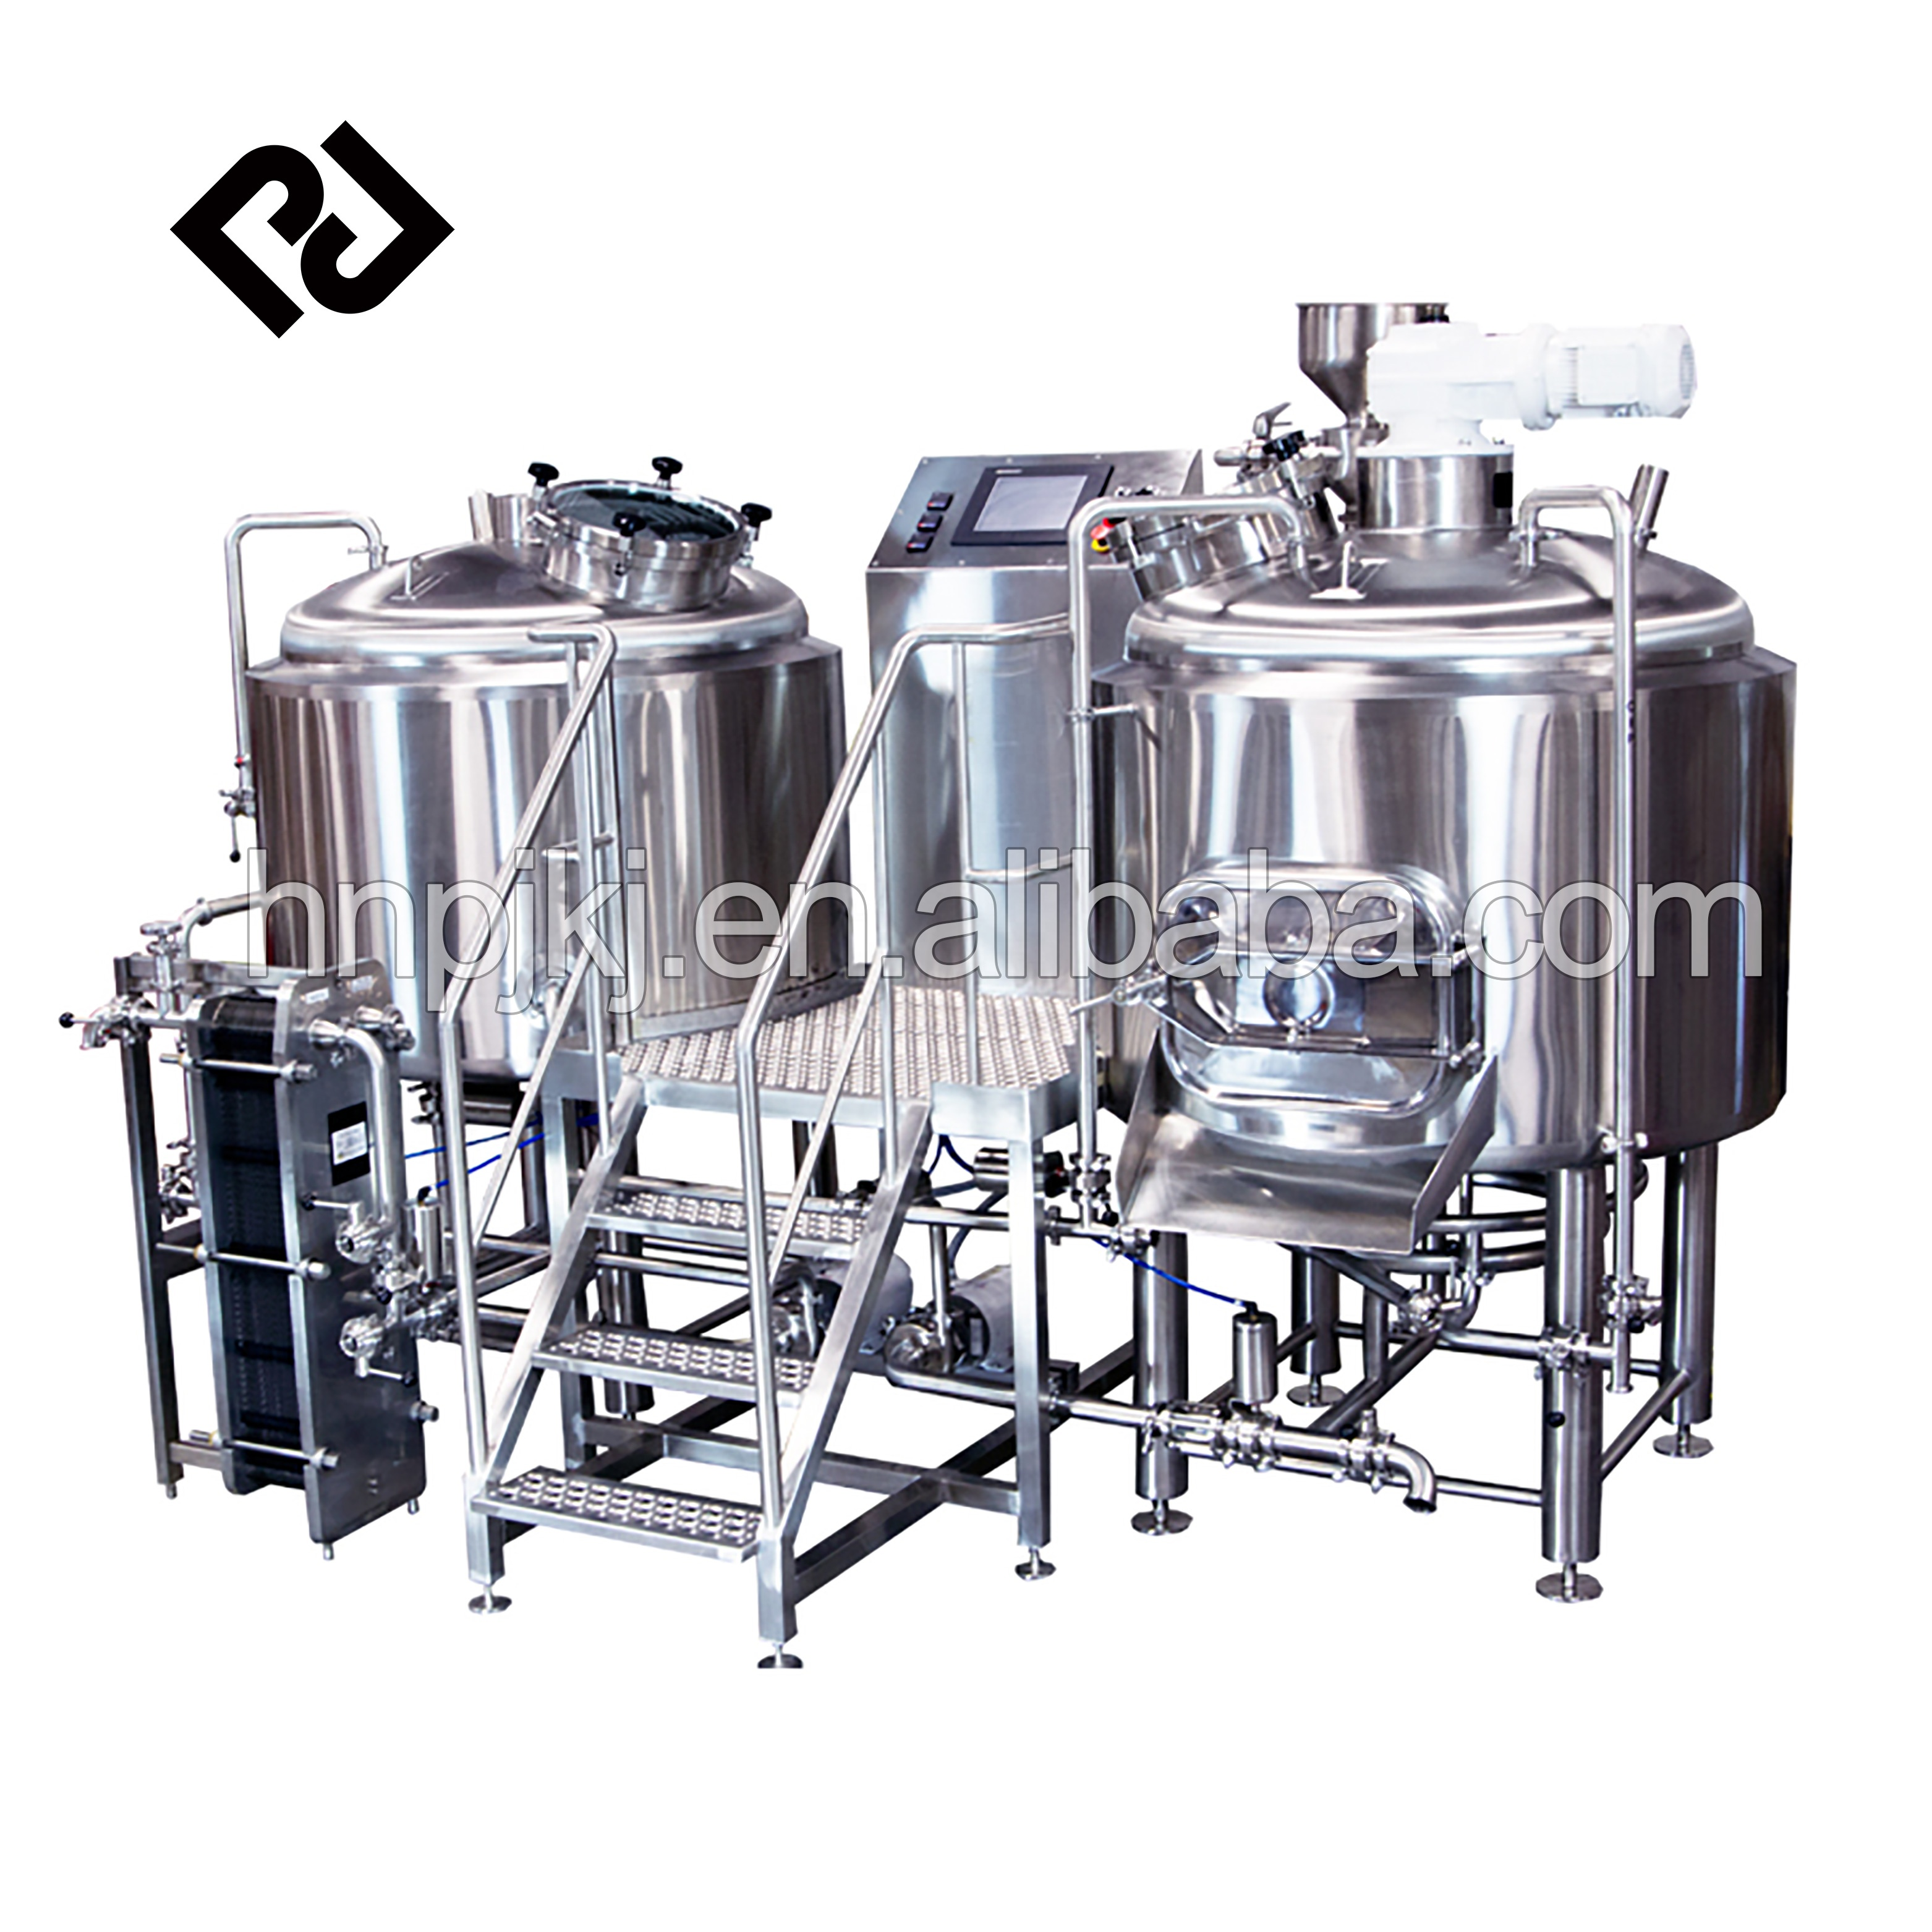 Complete commercial  beer brewing equipment for sale